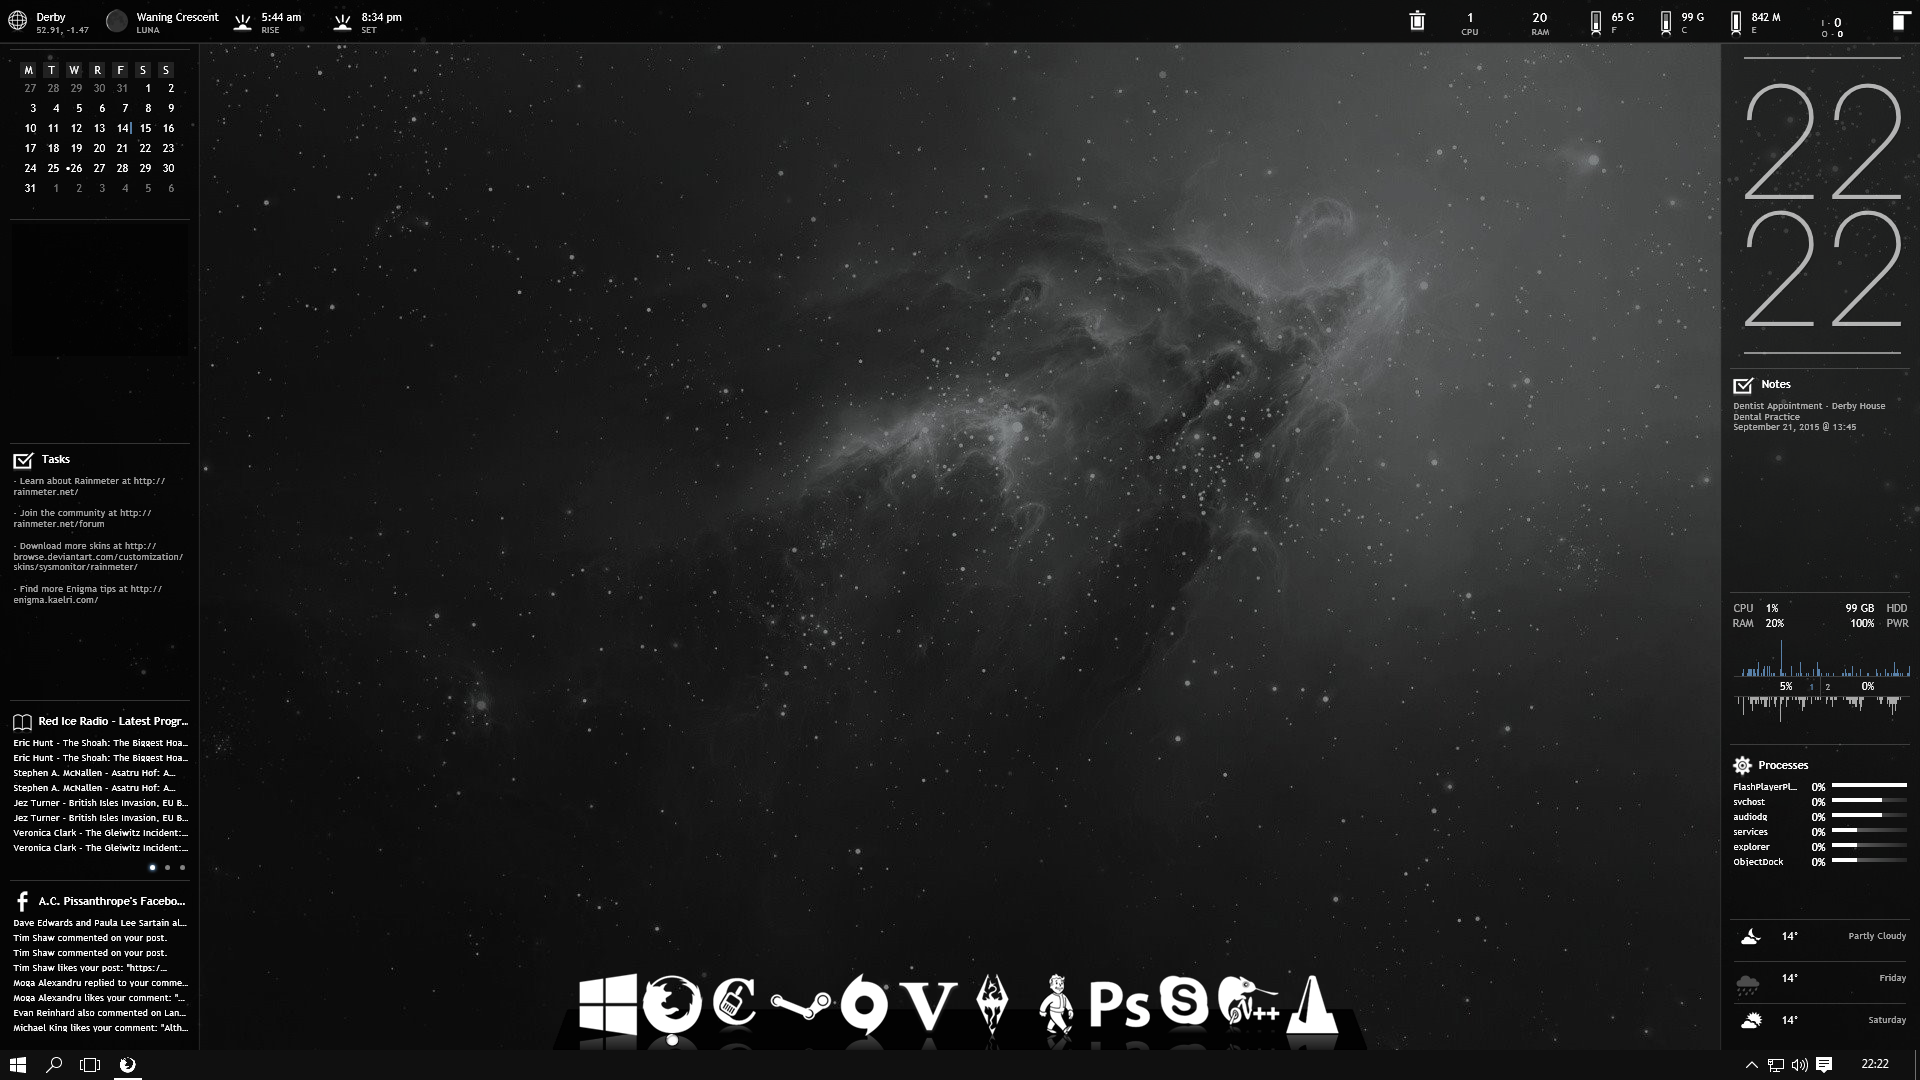 What Does Your Desktop Look Like? EAc7PWhr